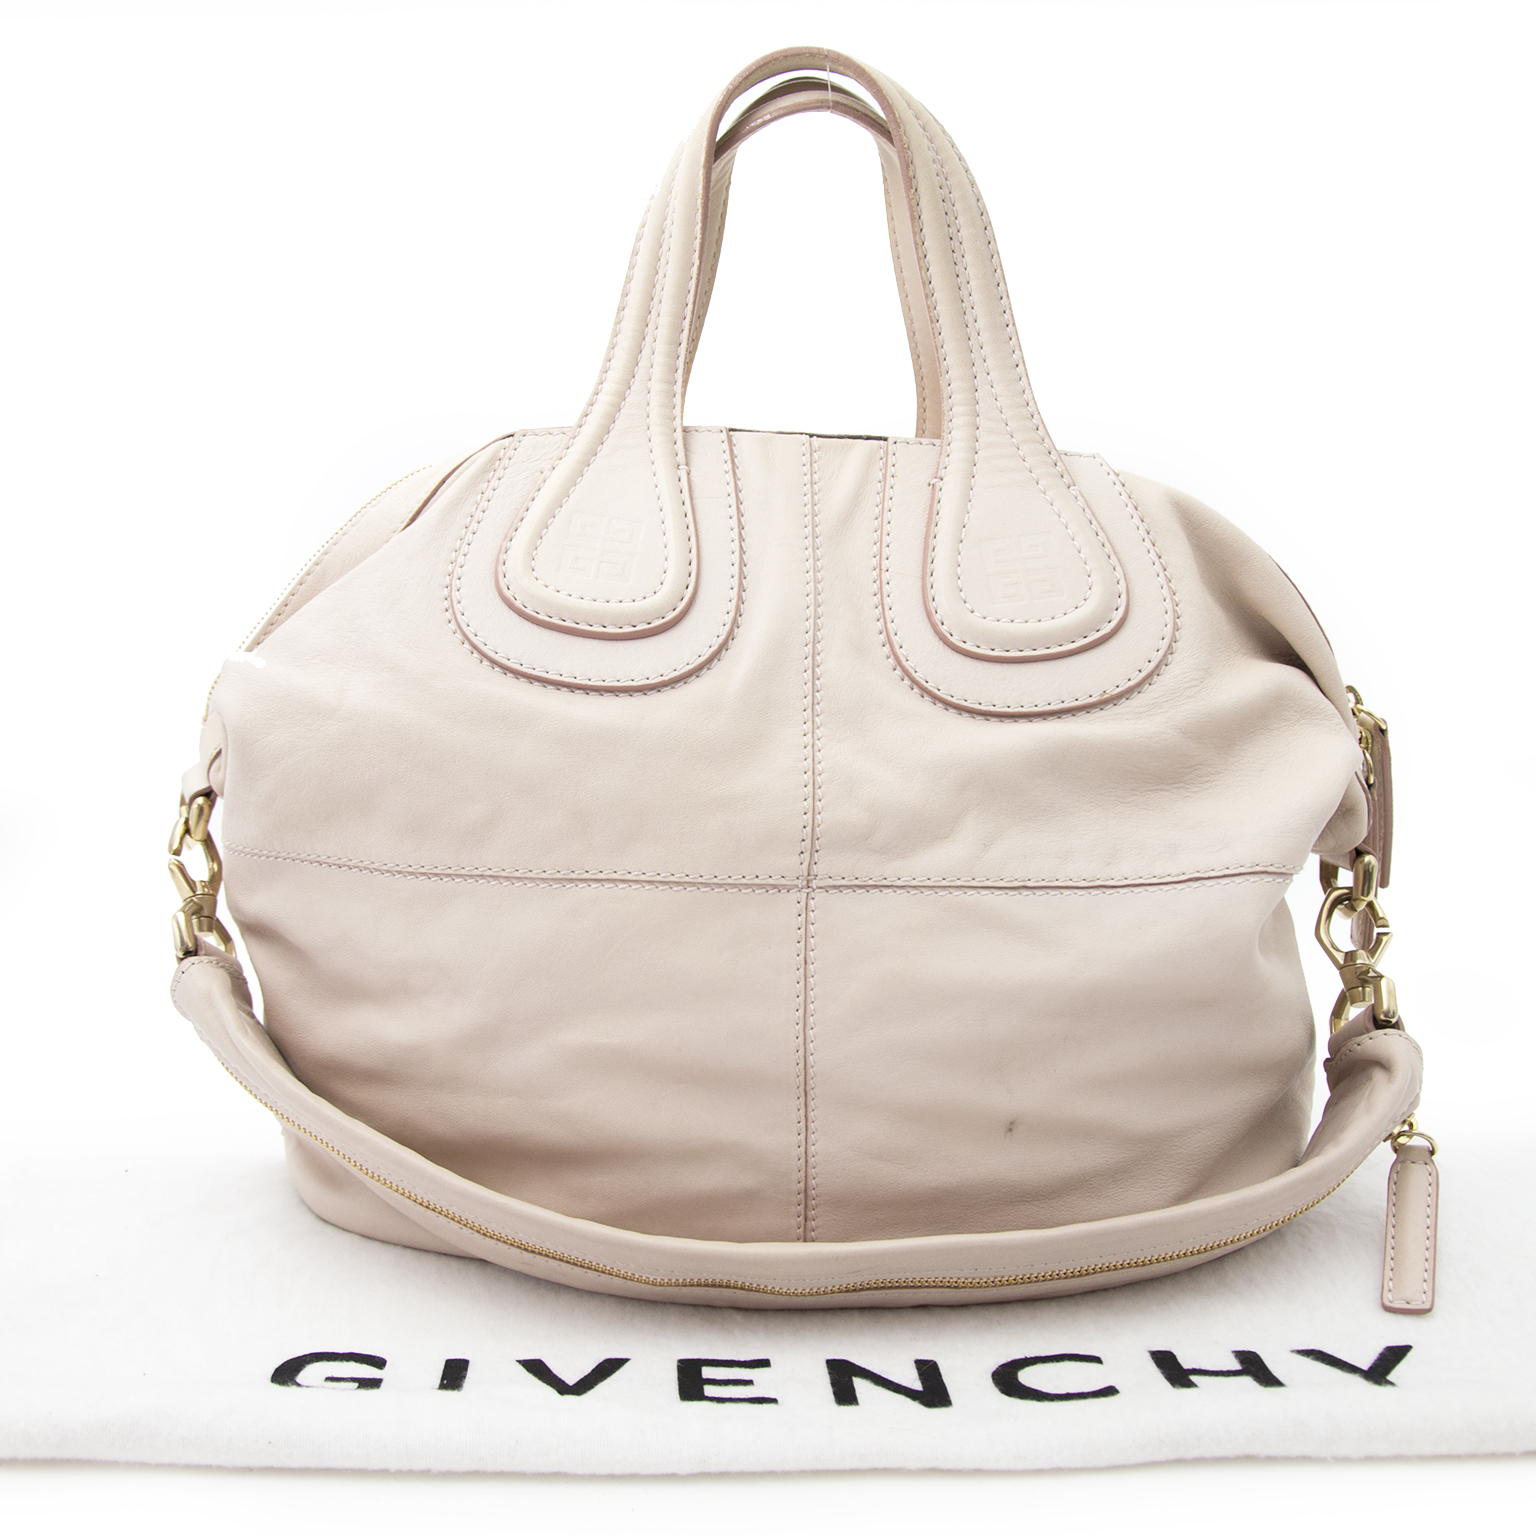 Shop safe online aan de beste prijs Givenchy Dusty White Nightingale Leather Tote Bag